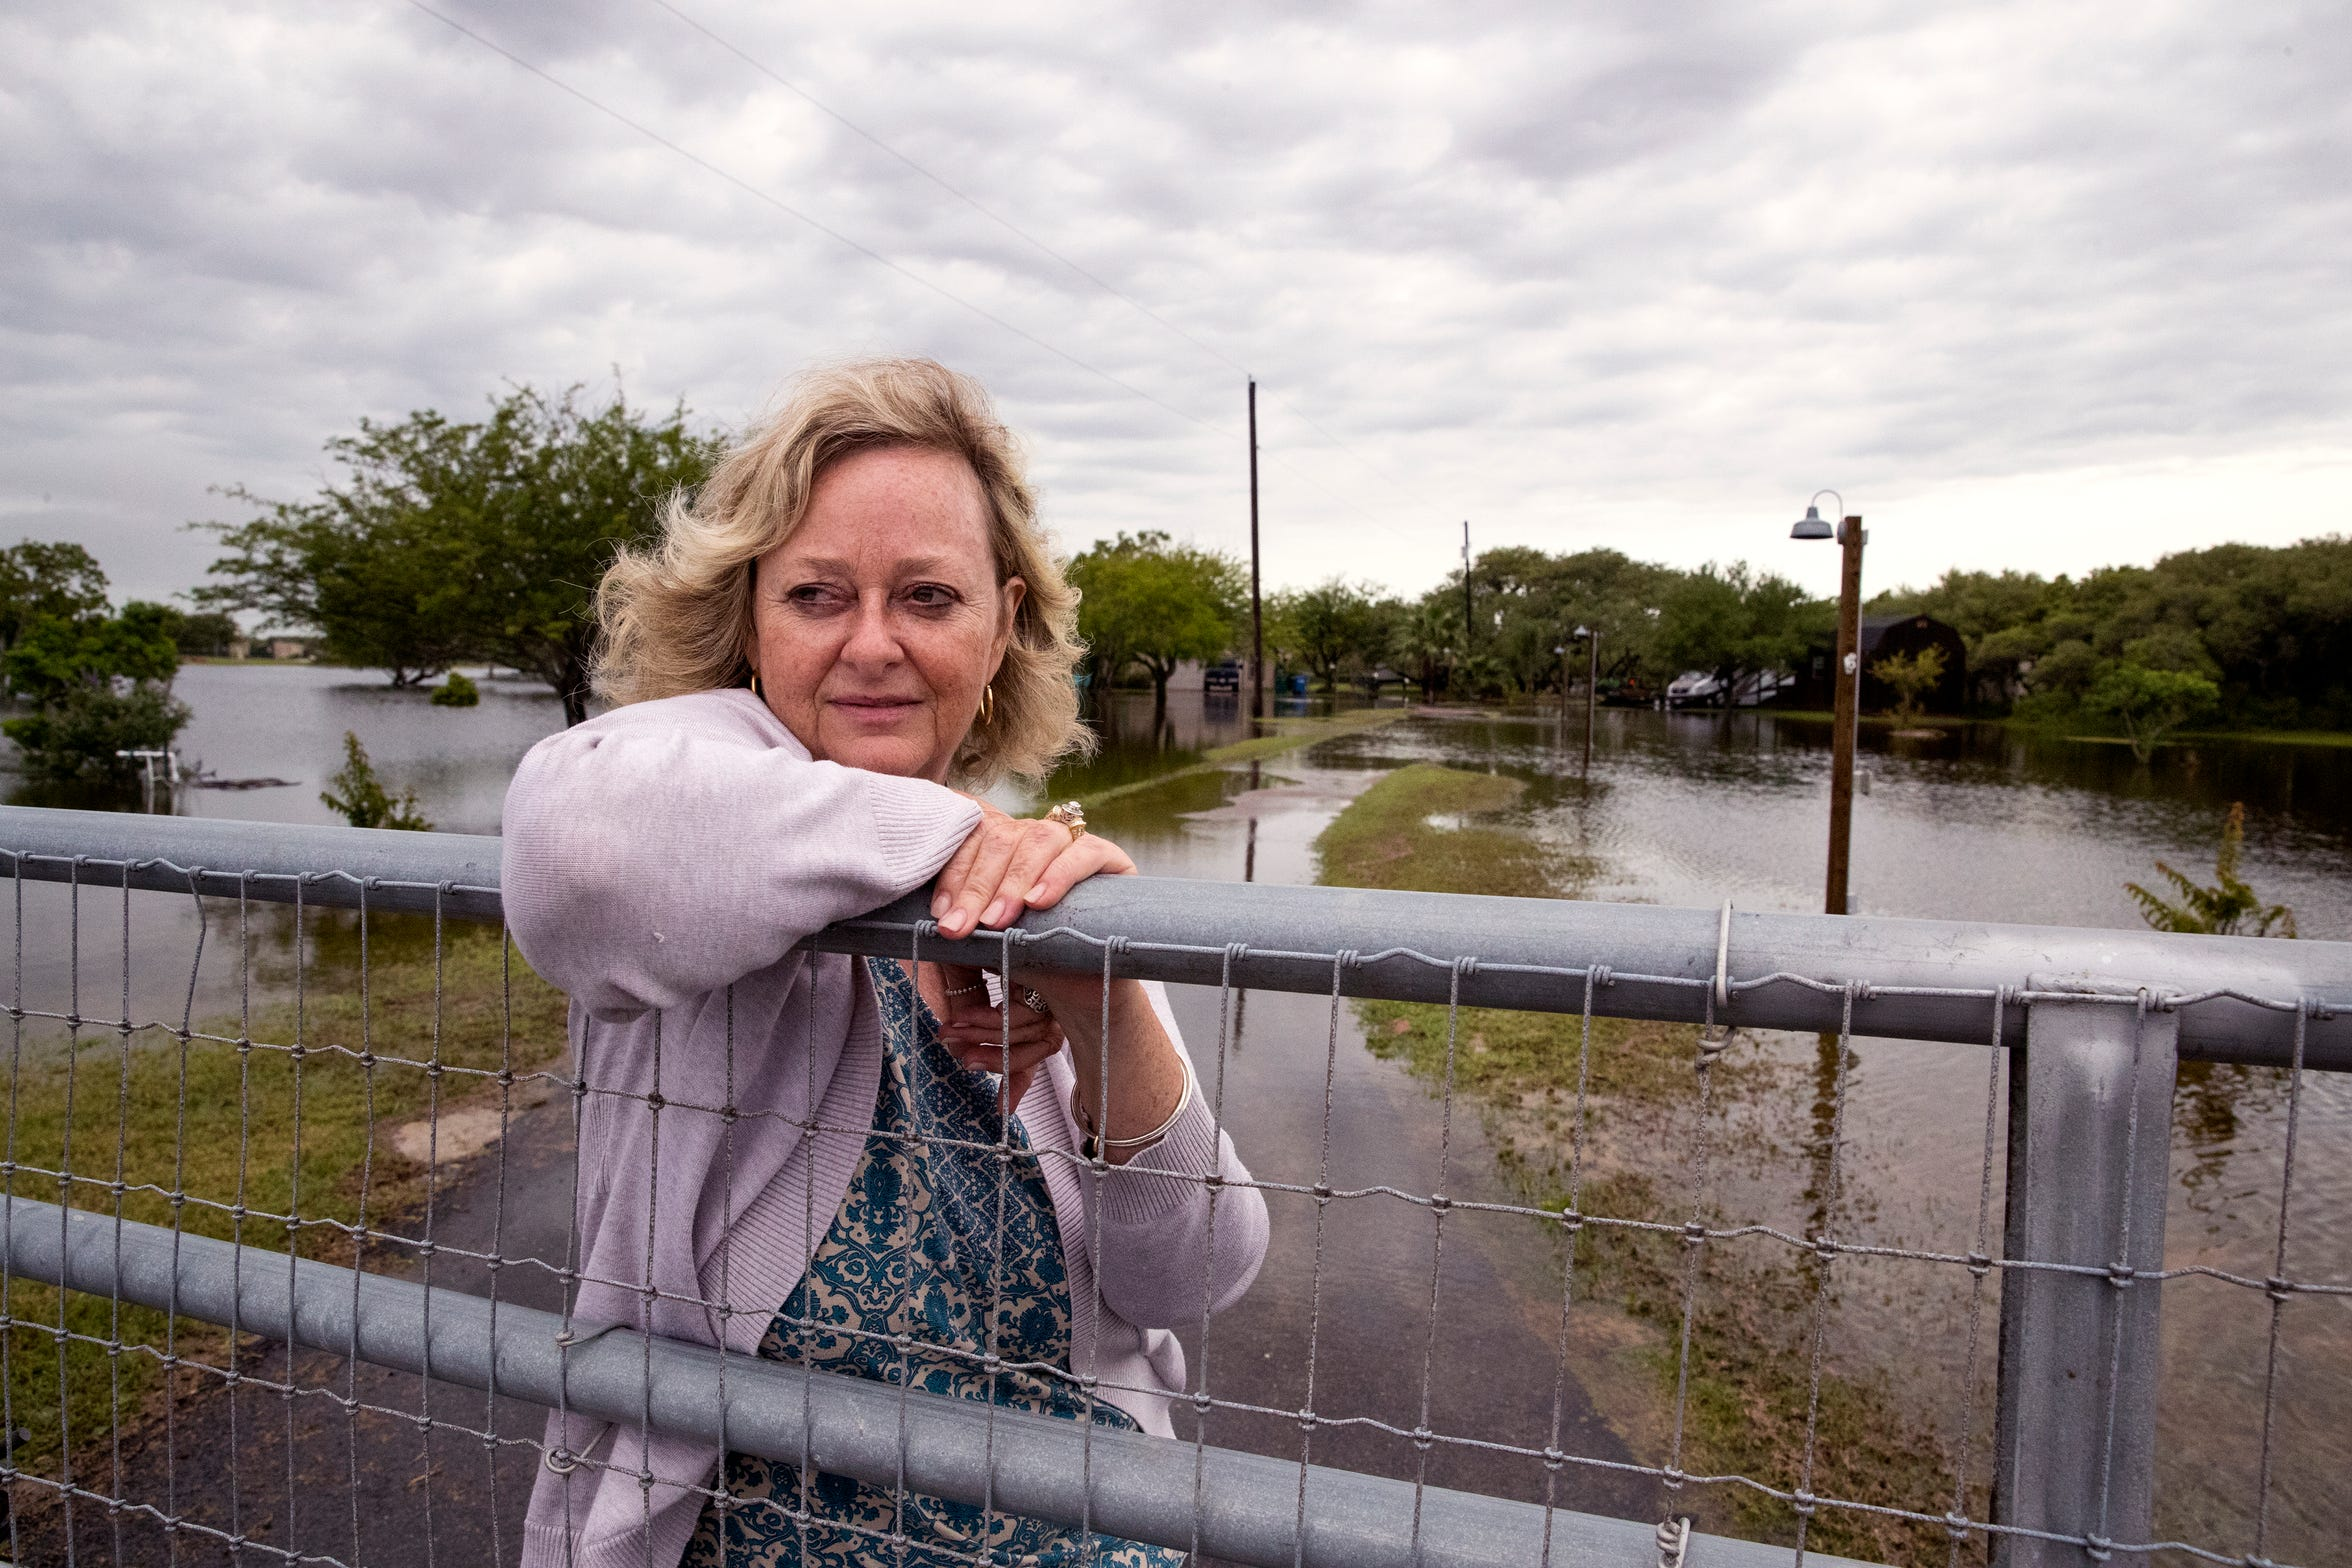 While water hasn't yet entered her home, Lynn Withers has water on every side of her yard at her home on Flour Bluff Drive following heavy rains on Friday, May 10, 2019. She said the city needs to make sure drainage ditches are cleaned out and long-term needs to improve the infrastructure.